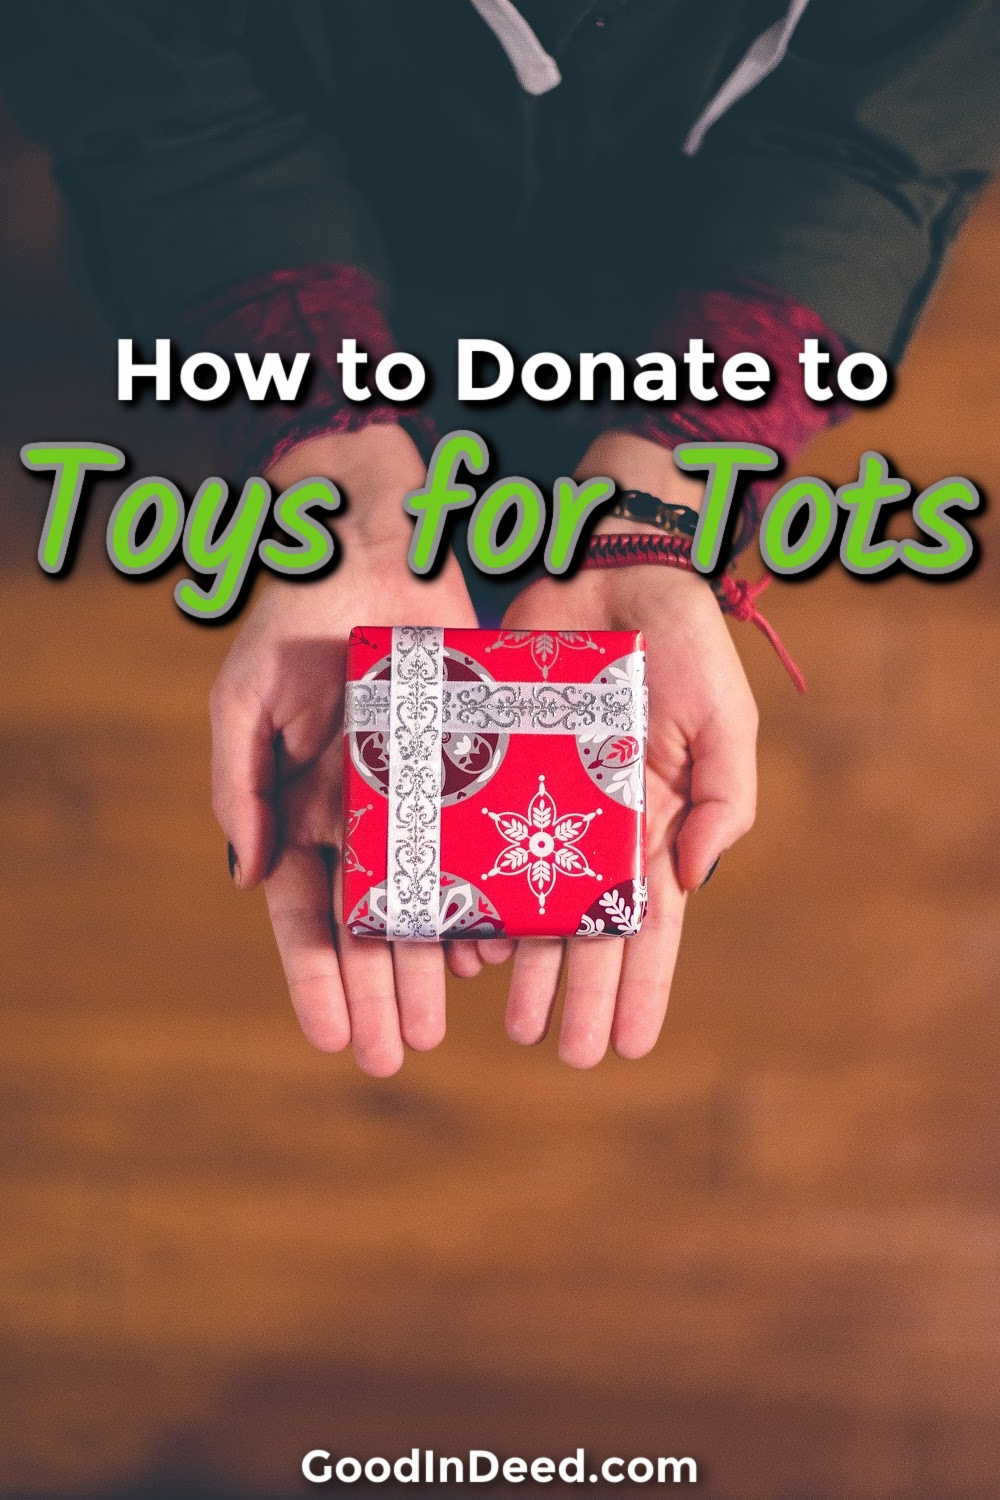 Toys for Tots 2020 is in greater need of donations as there are more families who are searching for a way to make something, anything out of the holiday season.